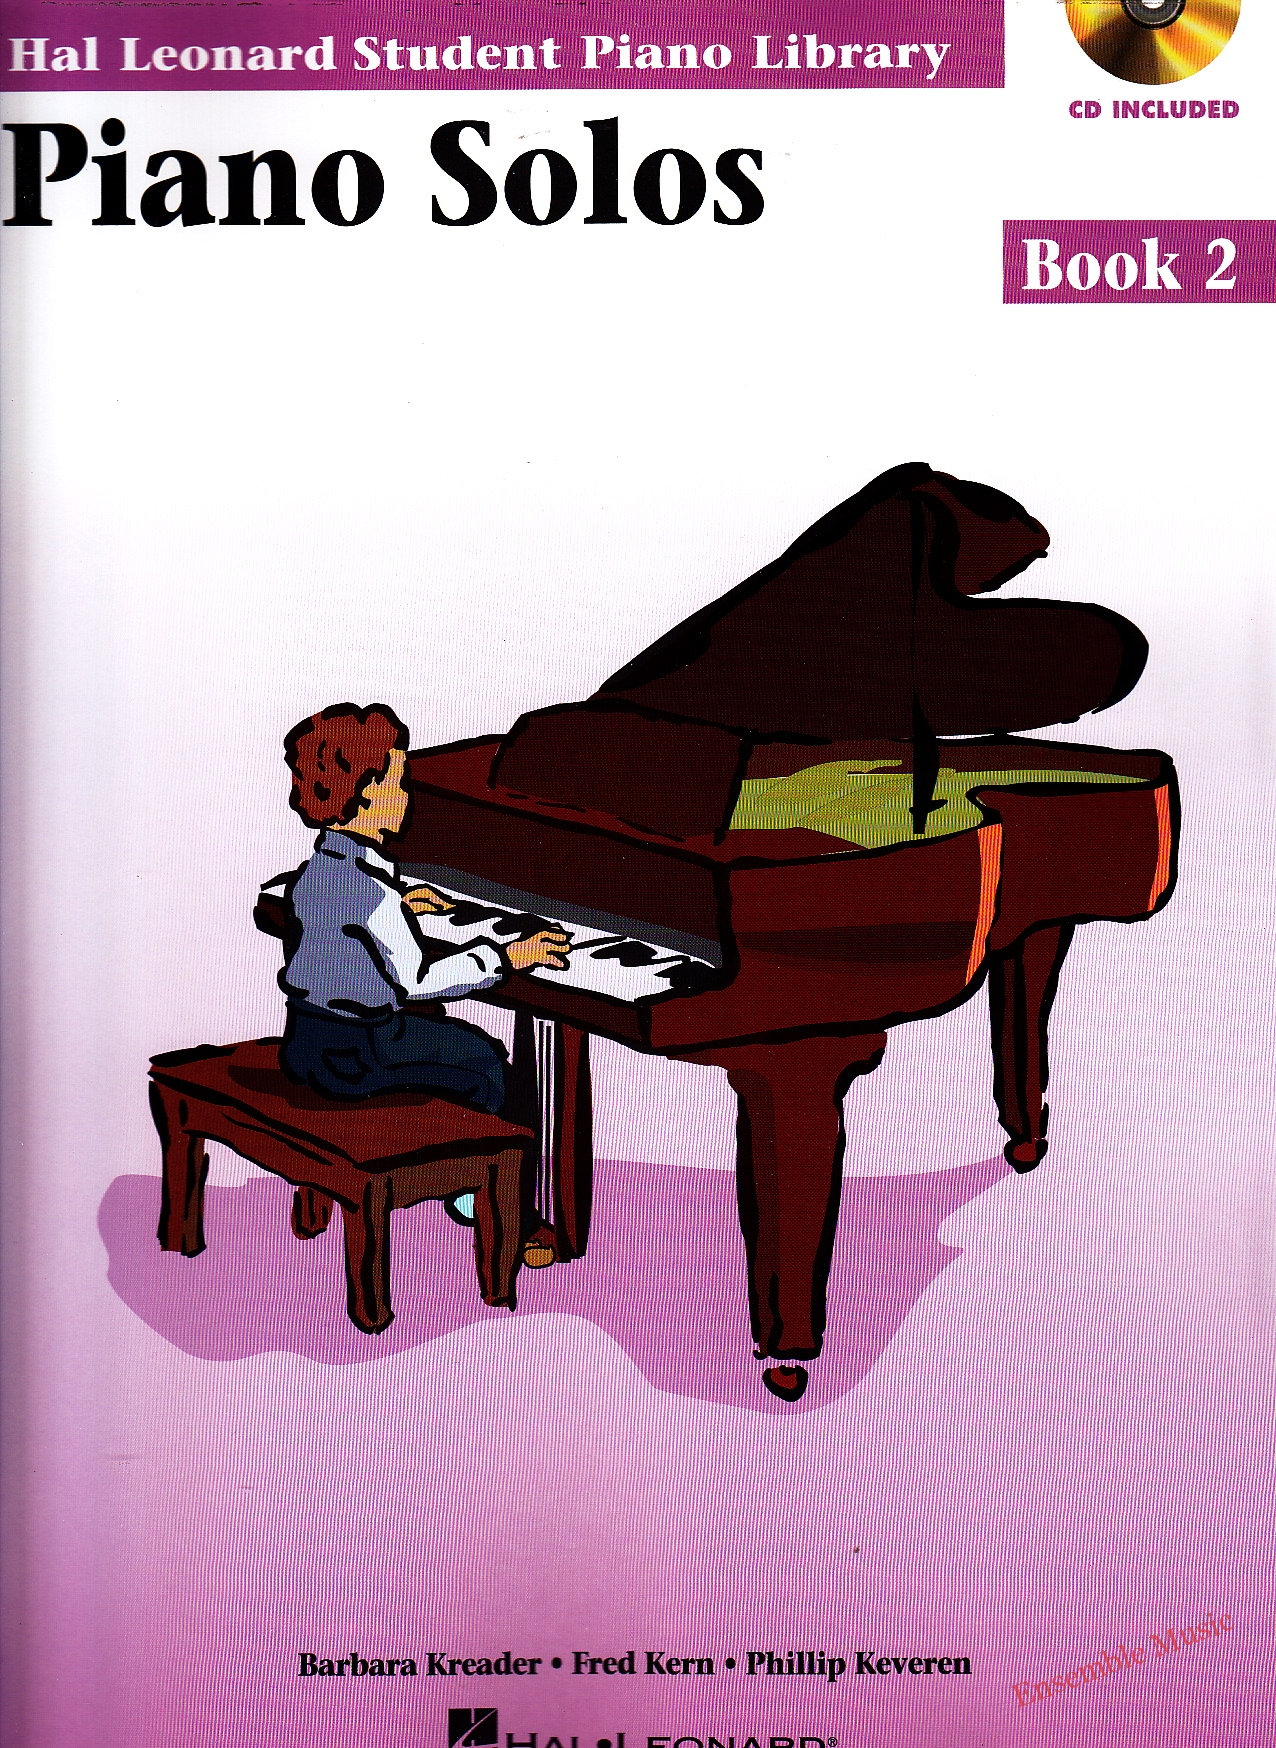 Piano Solos Book 2 Book CD Pack